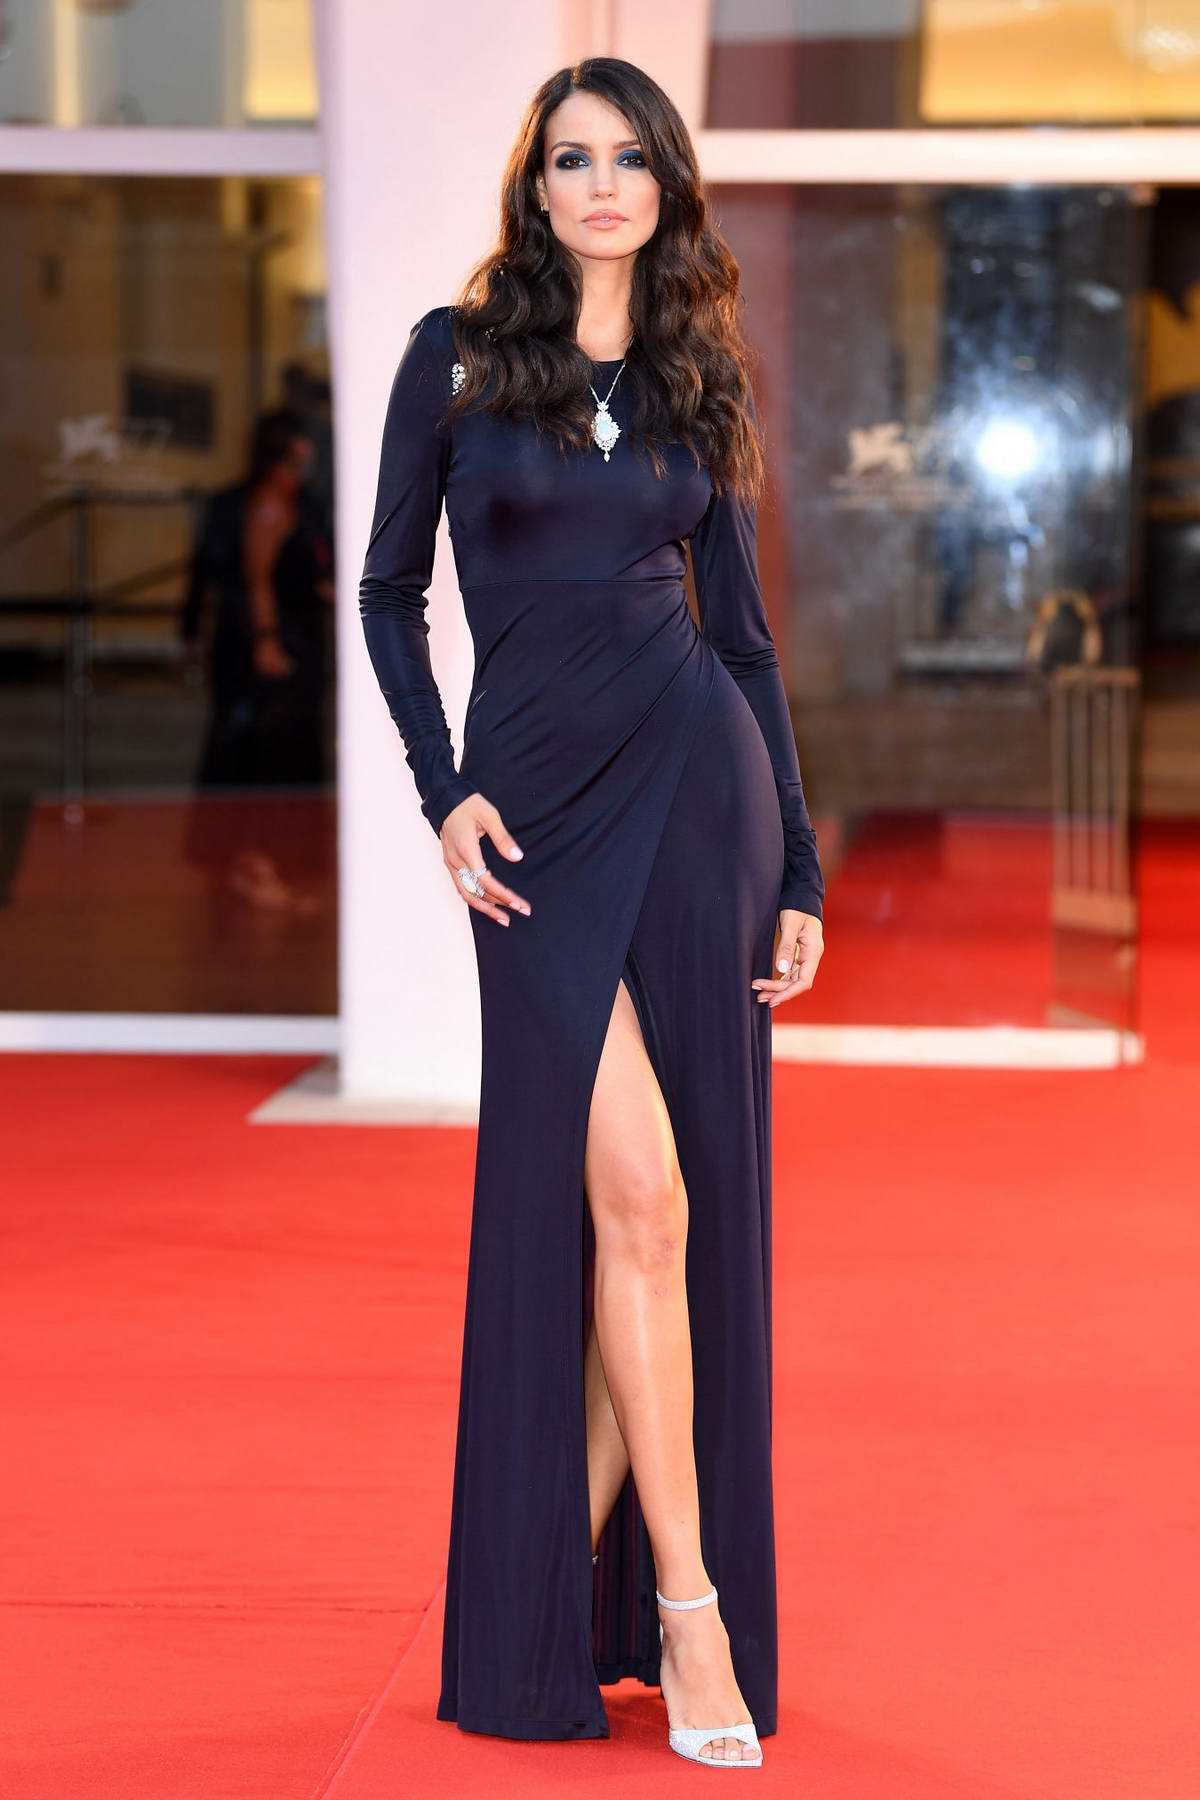 Sofia Resing attends the Premiere 'The World To Come' during the 77th Venice Film Festival in Venice, Italy